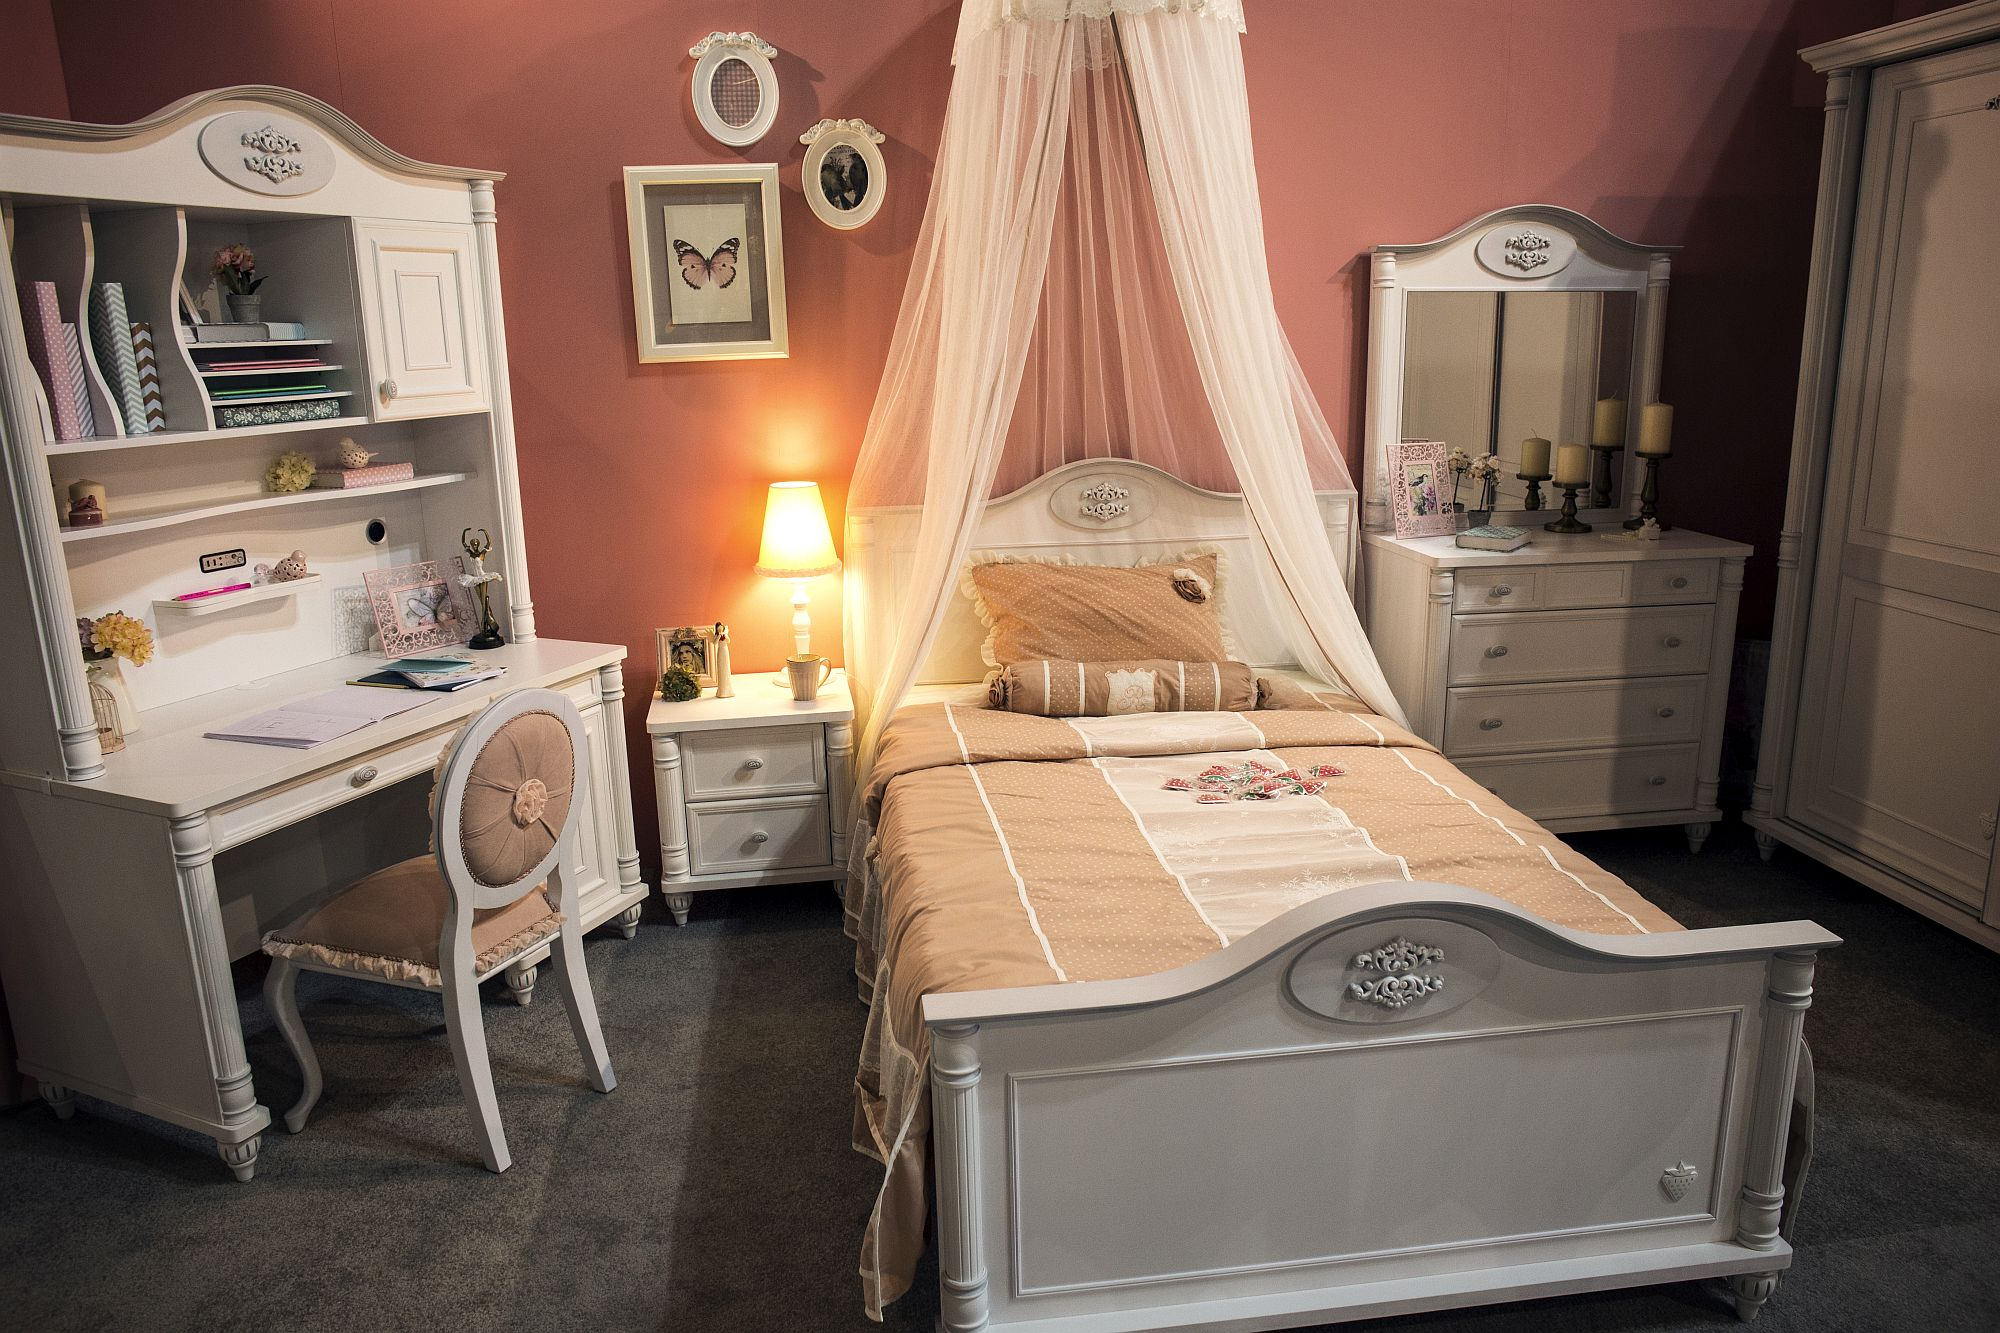 Luxurious pink and white kids' bedroom